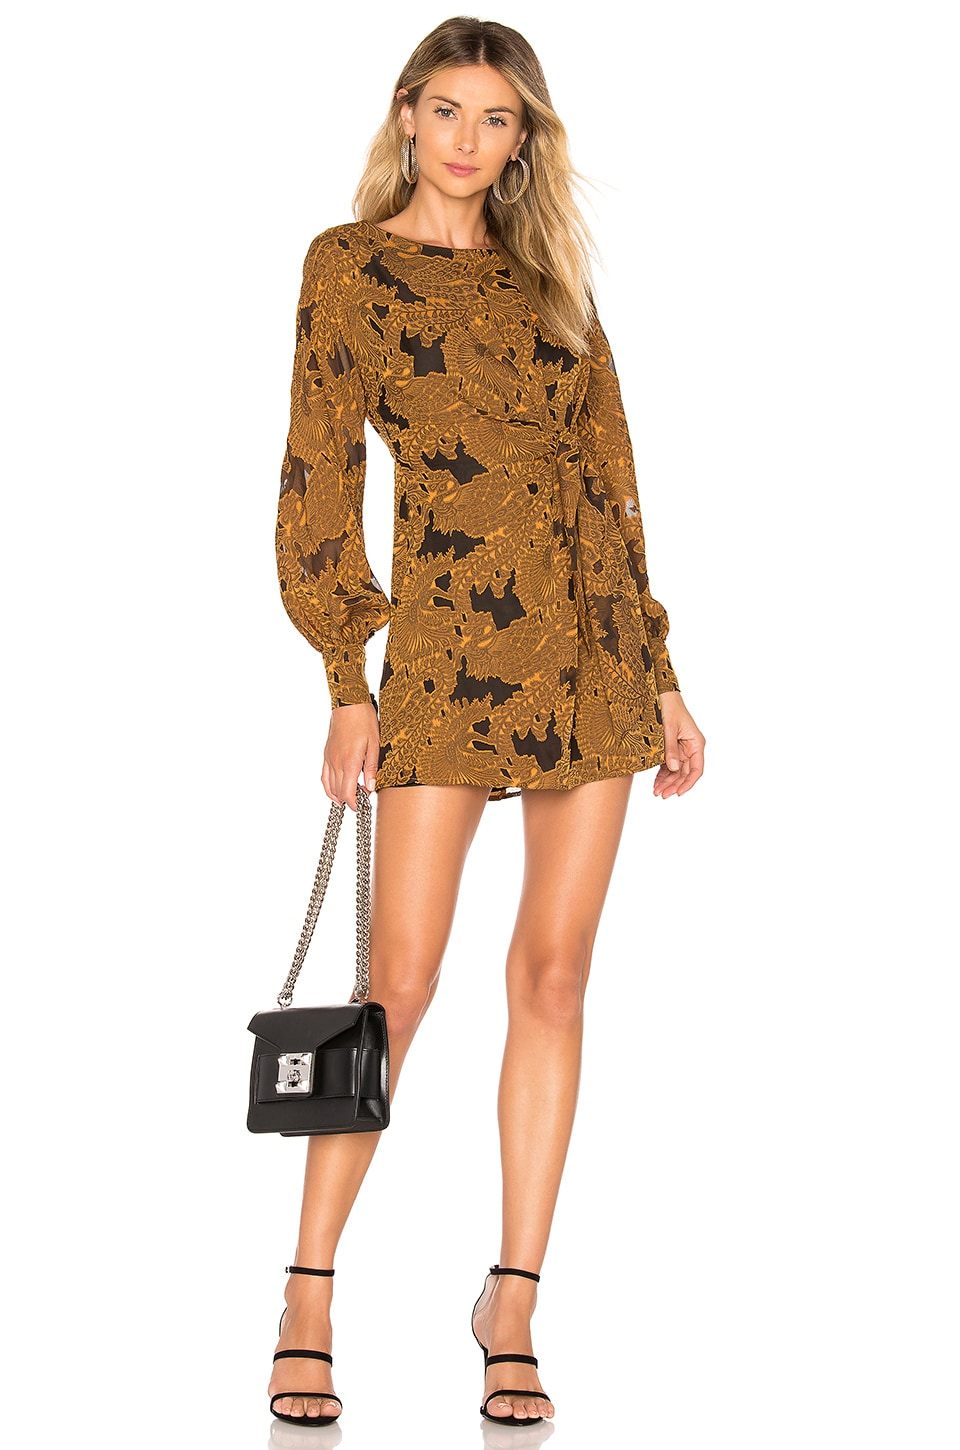 House of Harlow 1960 x REVOLVE Clark Dress in Mustard